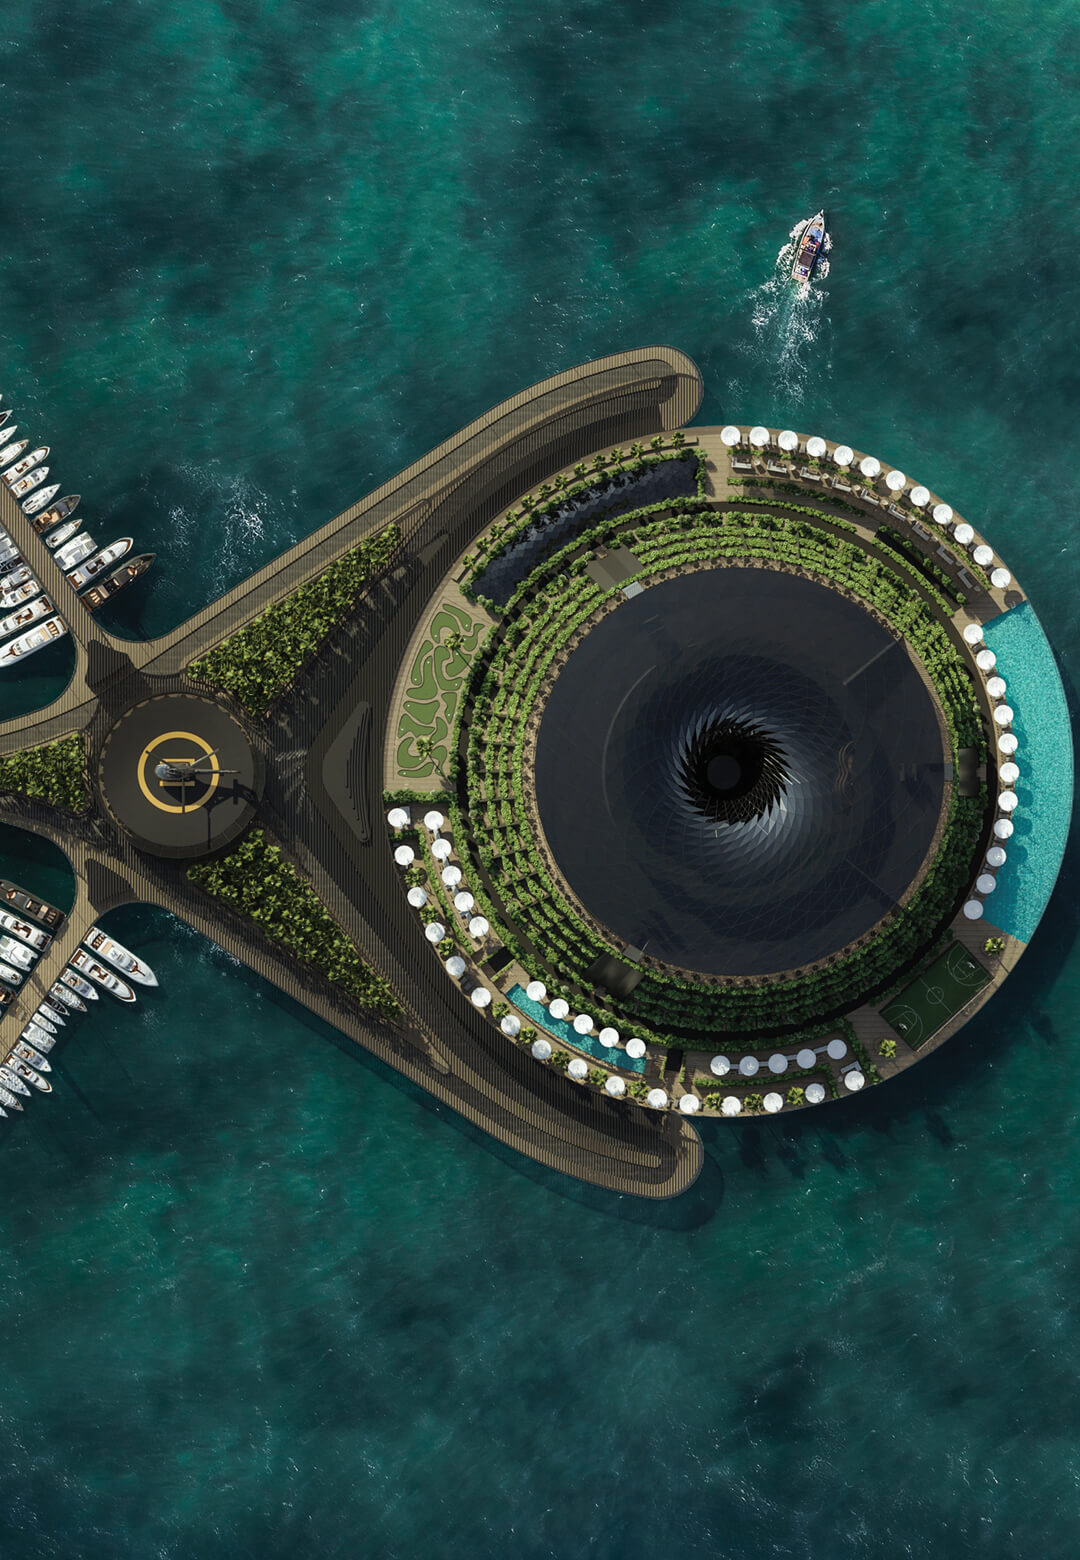 Hayri Atak Architectural Design Studio has designed a concept for a Floating Eco-Friendly Hotel | Hayri Atak Architectural Design Studio| Qatar | STIRworld